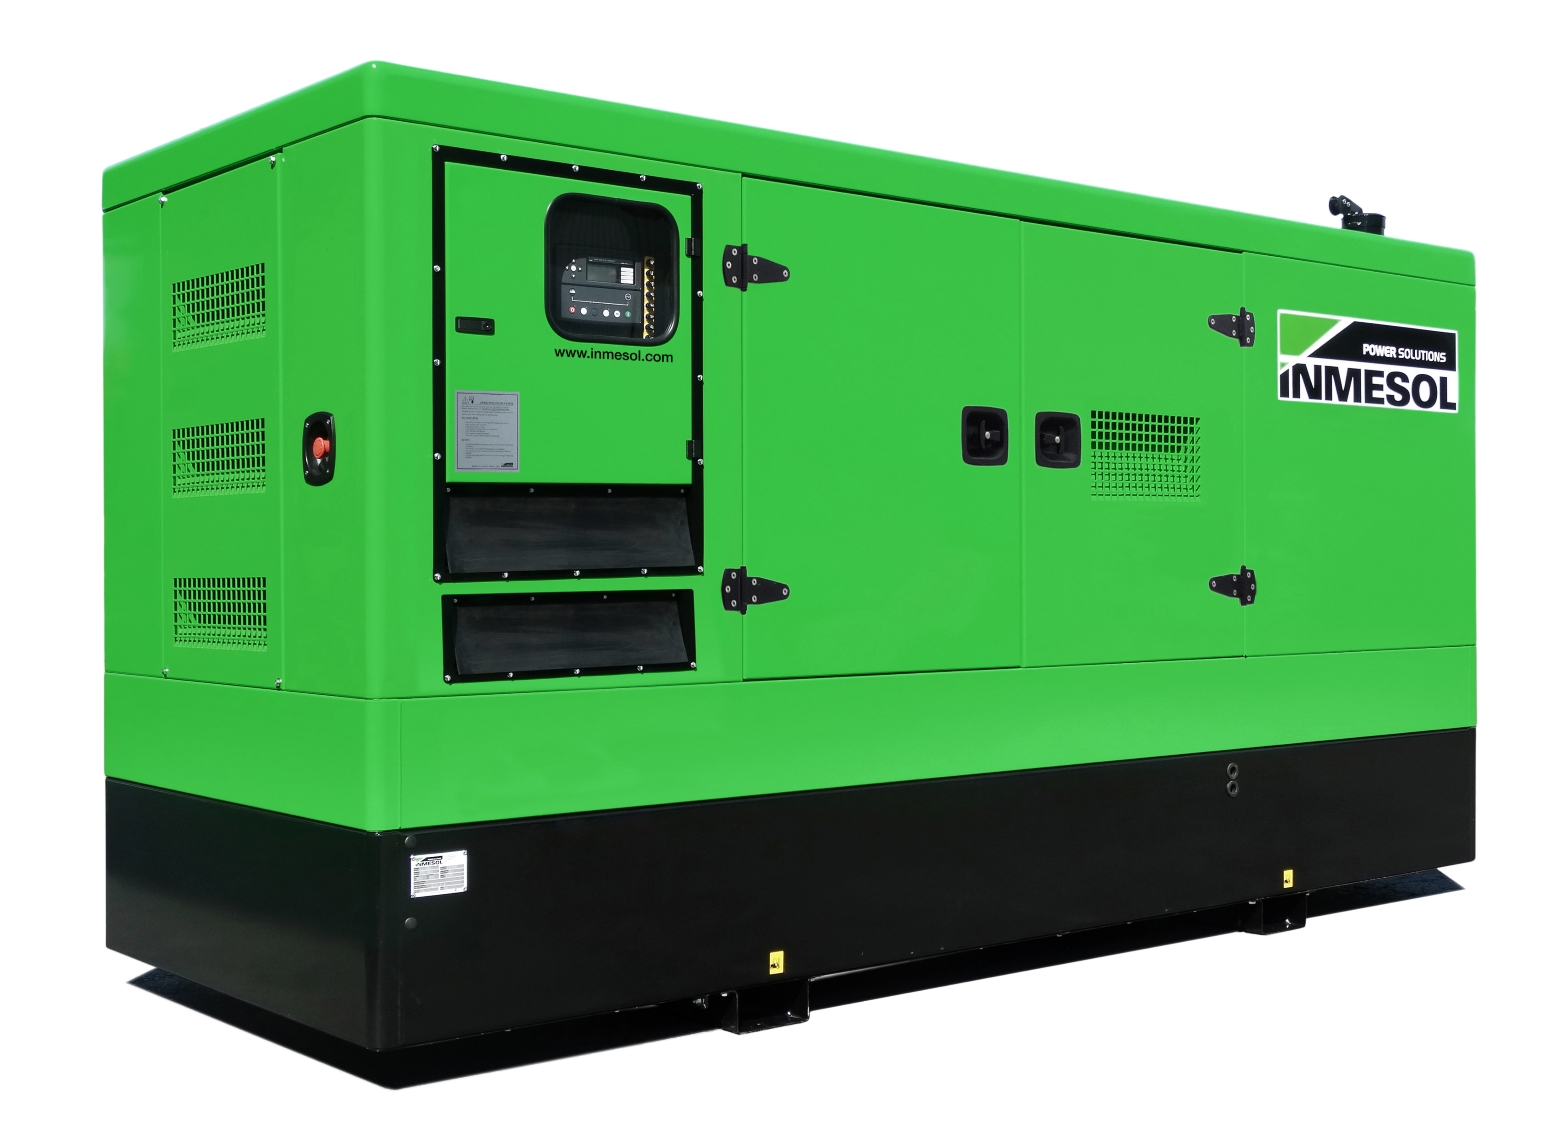 Generator with manual control panel.IV-465 - VOLVO - TAD1343GE(60HZ) - 1.800 R.P.M. | 60 Hz